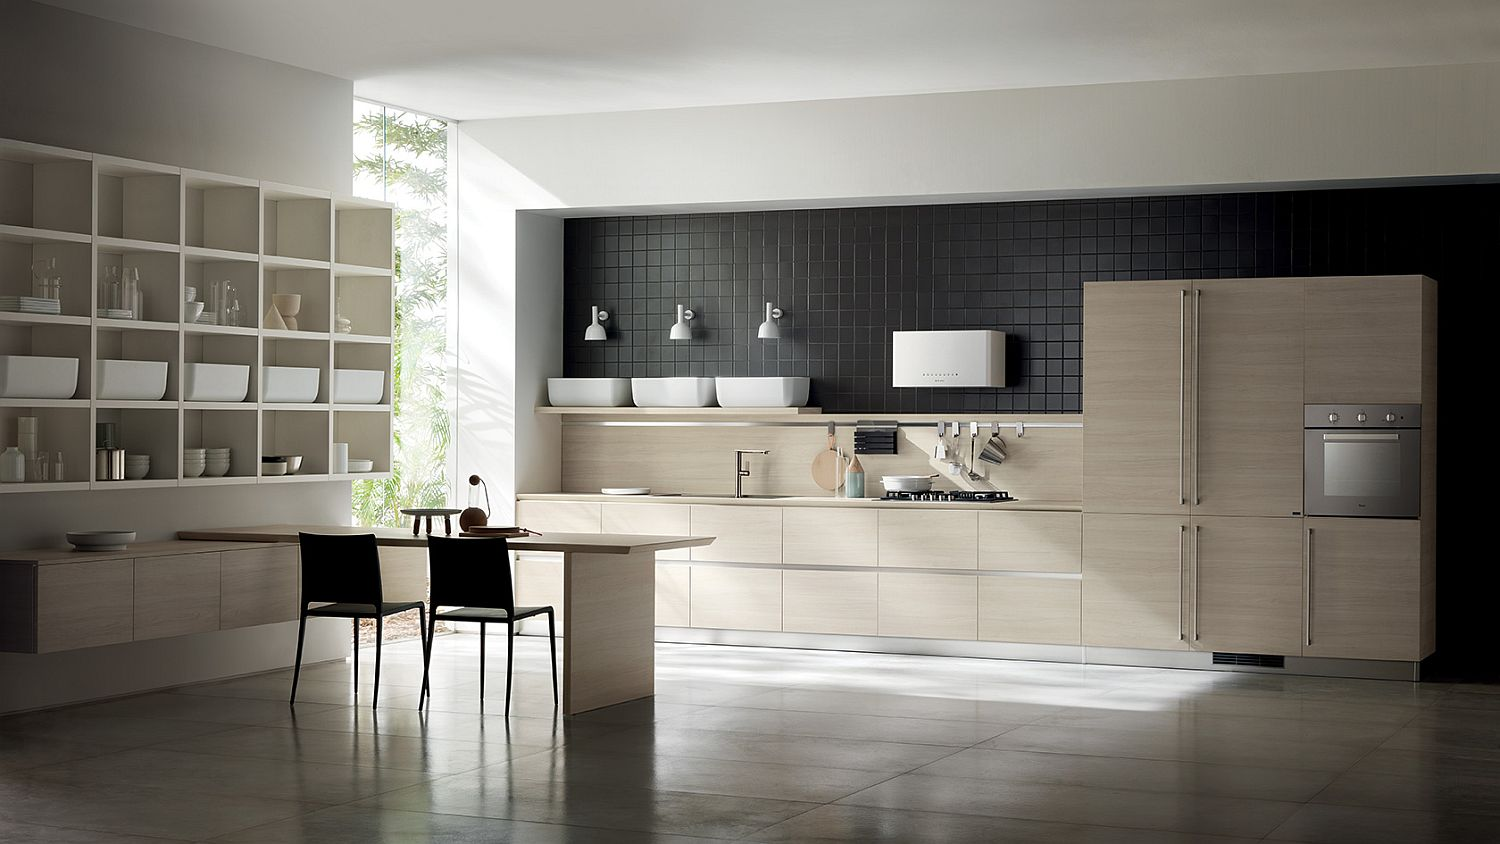 Fluida wall system combined with ultra-minimal Qi kitchen